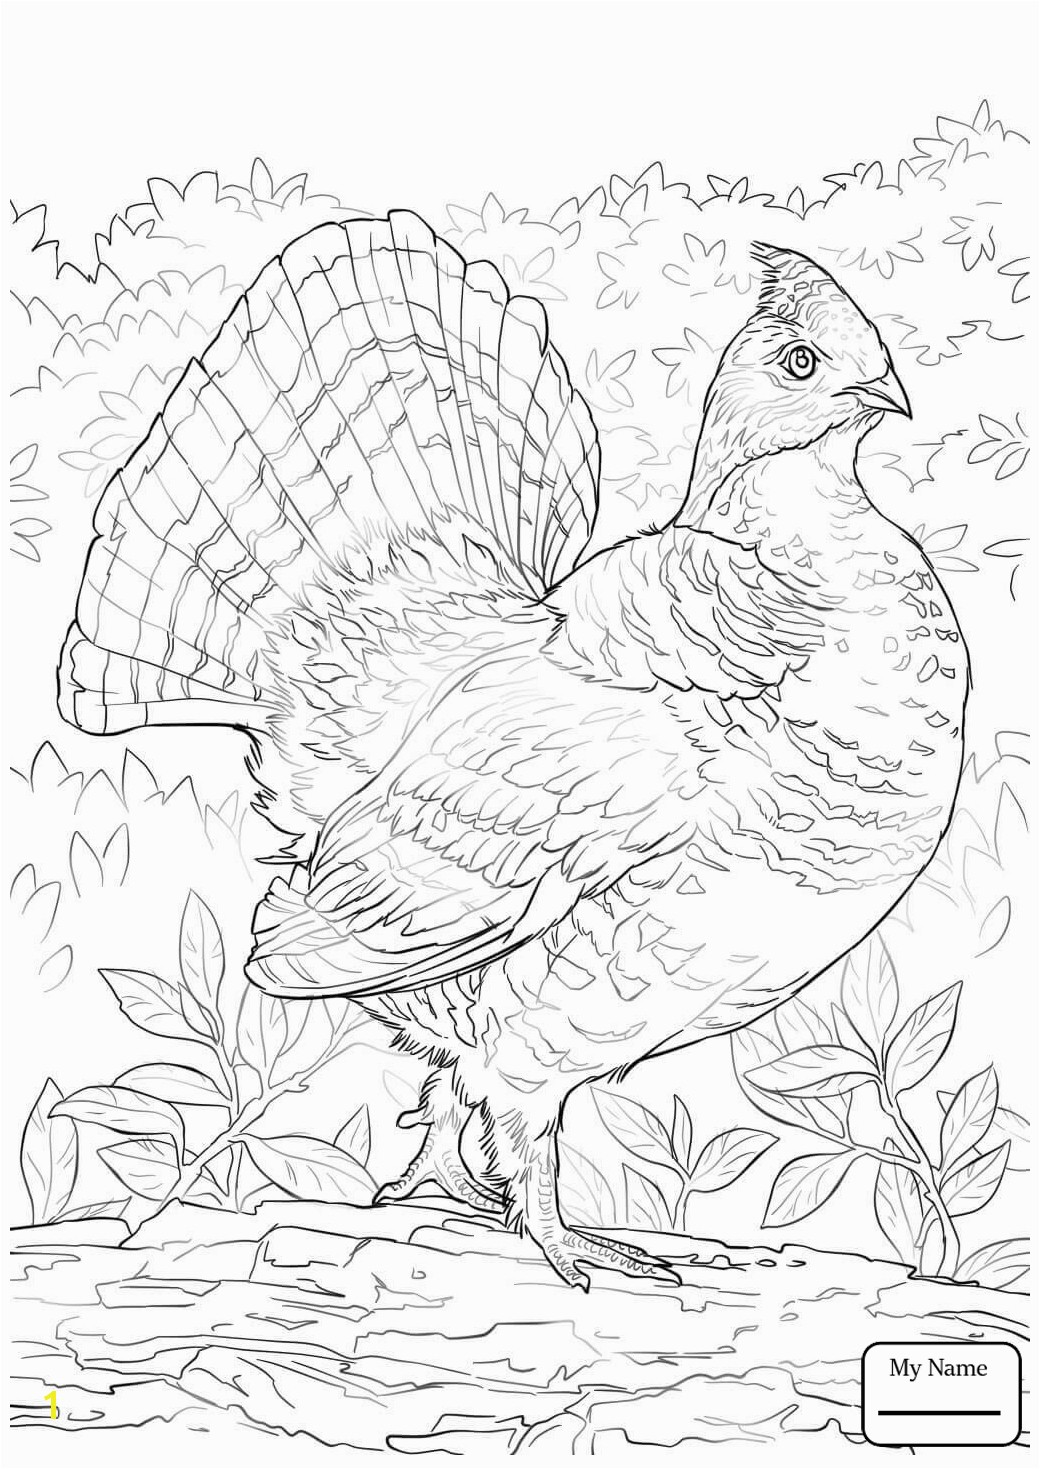 Printable Crammed Ruffed Grouse Coloring Page Best to Unknown Awesome Free Printable Coloring Page Best